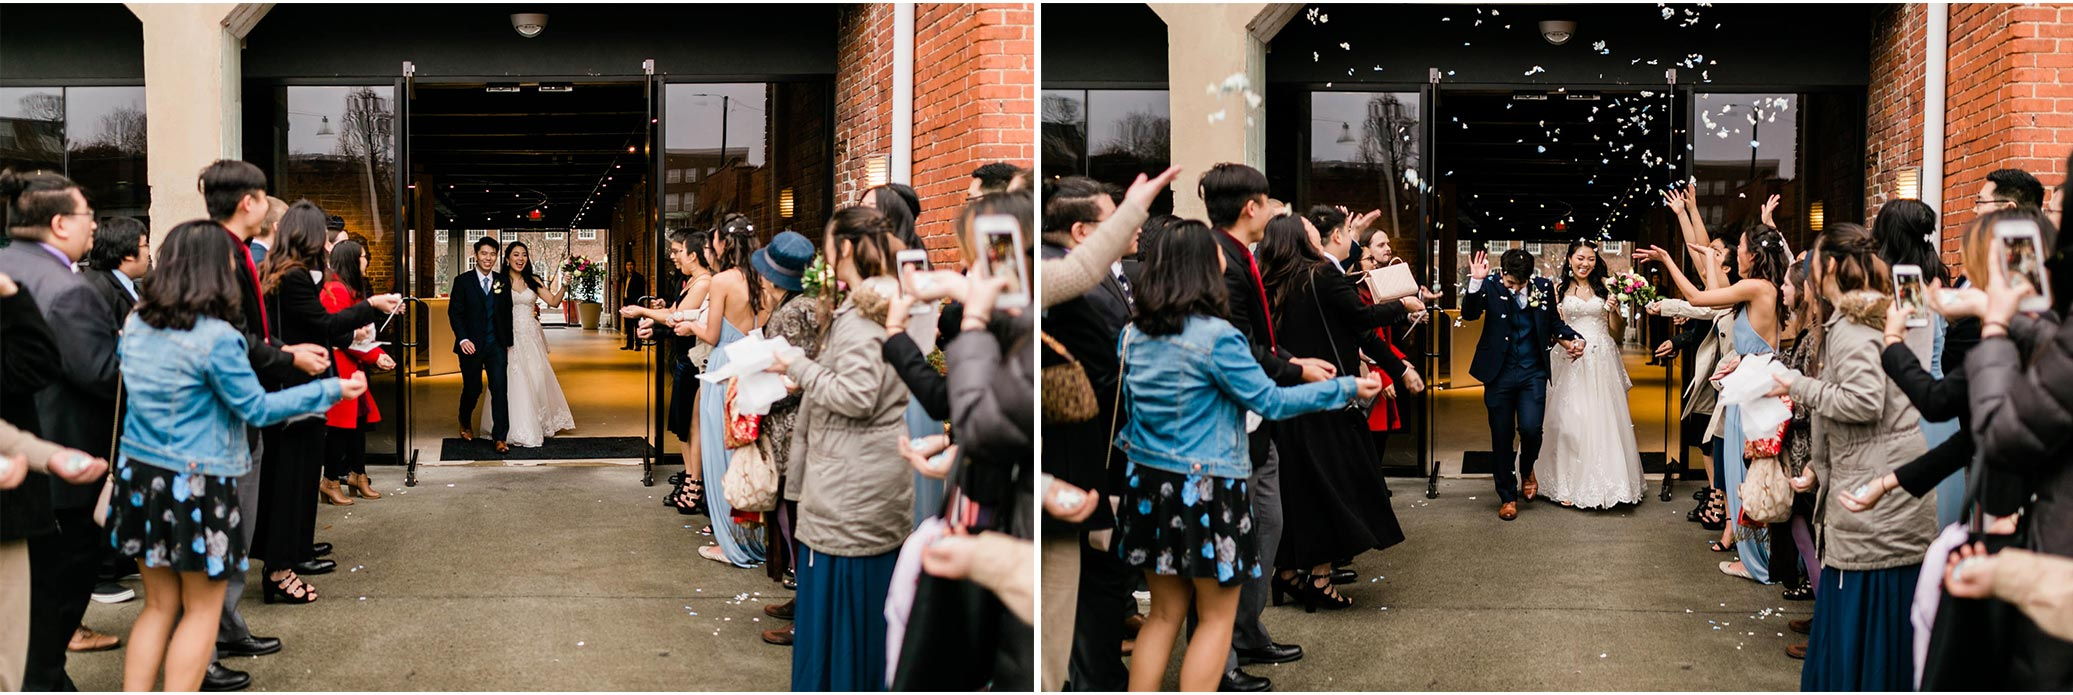 Wedding Sendoff at The Cotton Room | Durham NC Photographer | By G. Lin Photography